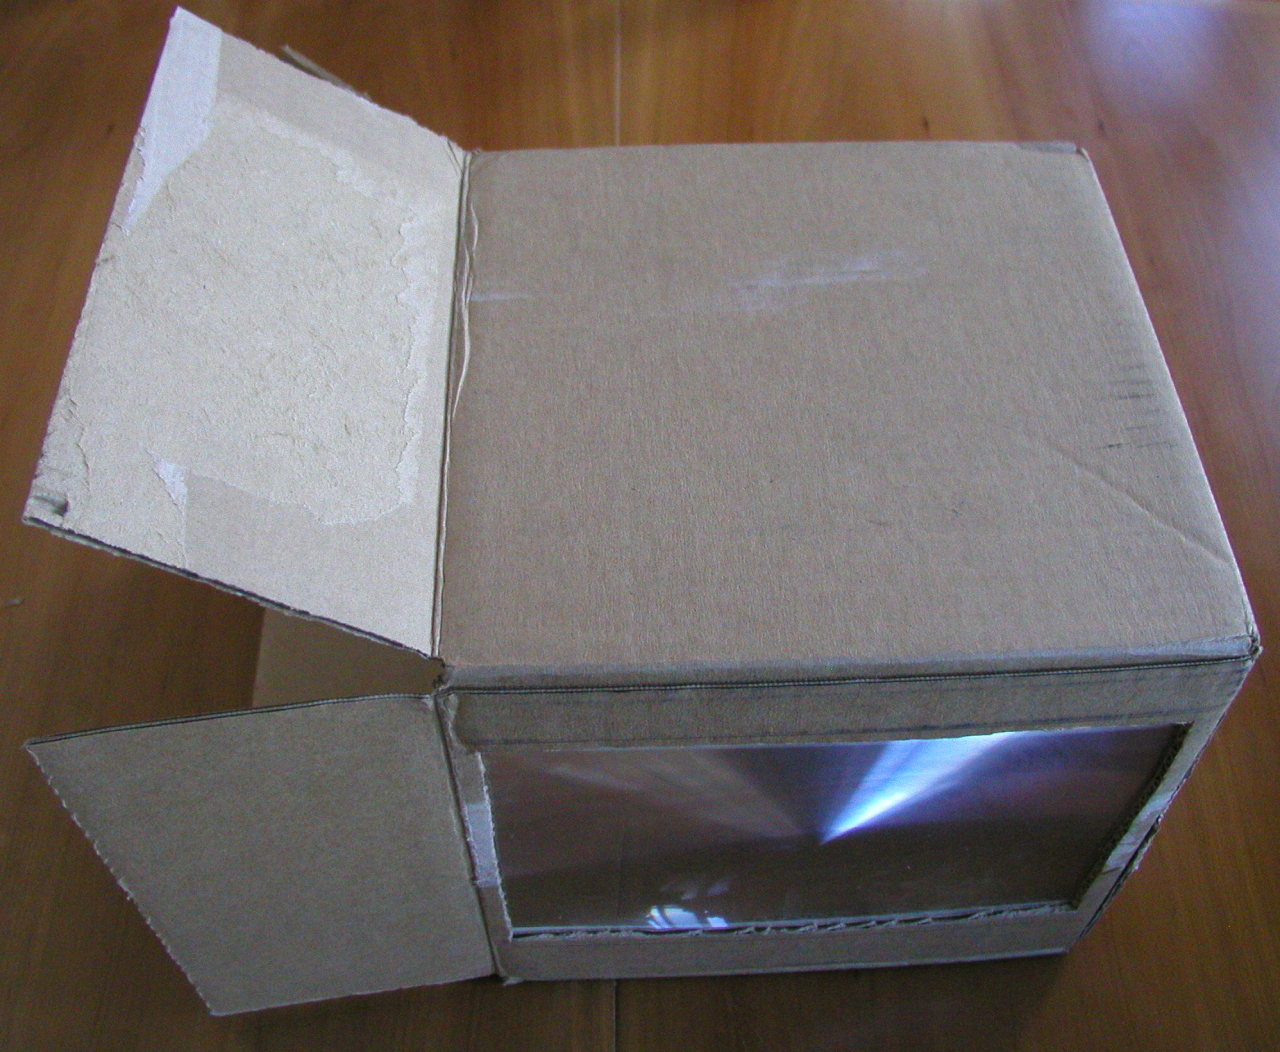 Box with lens